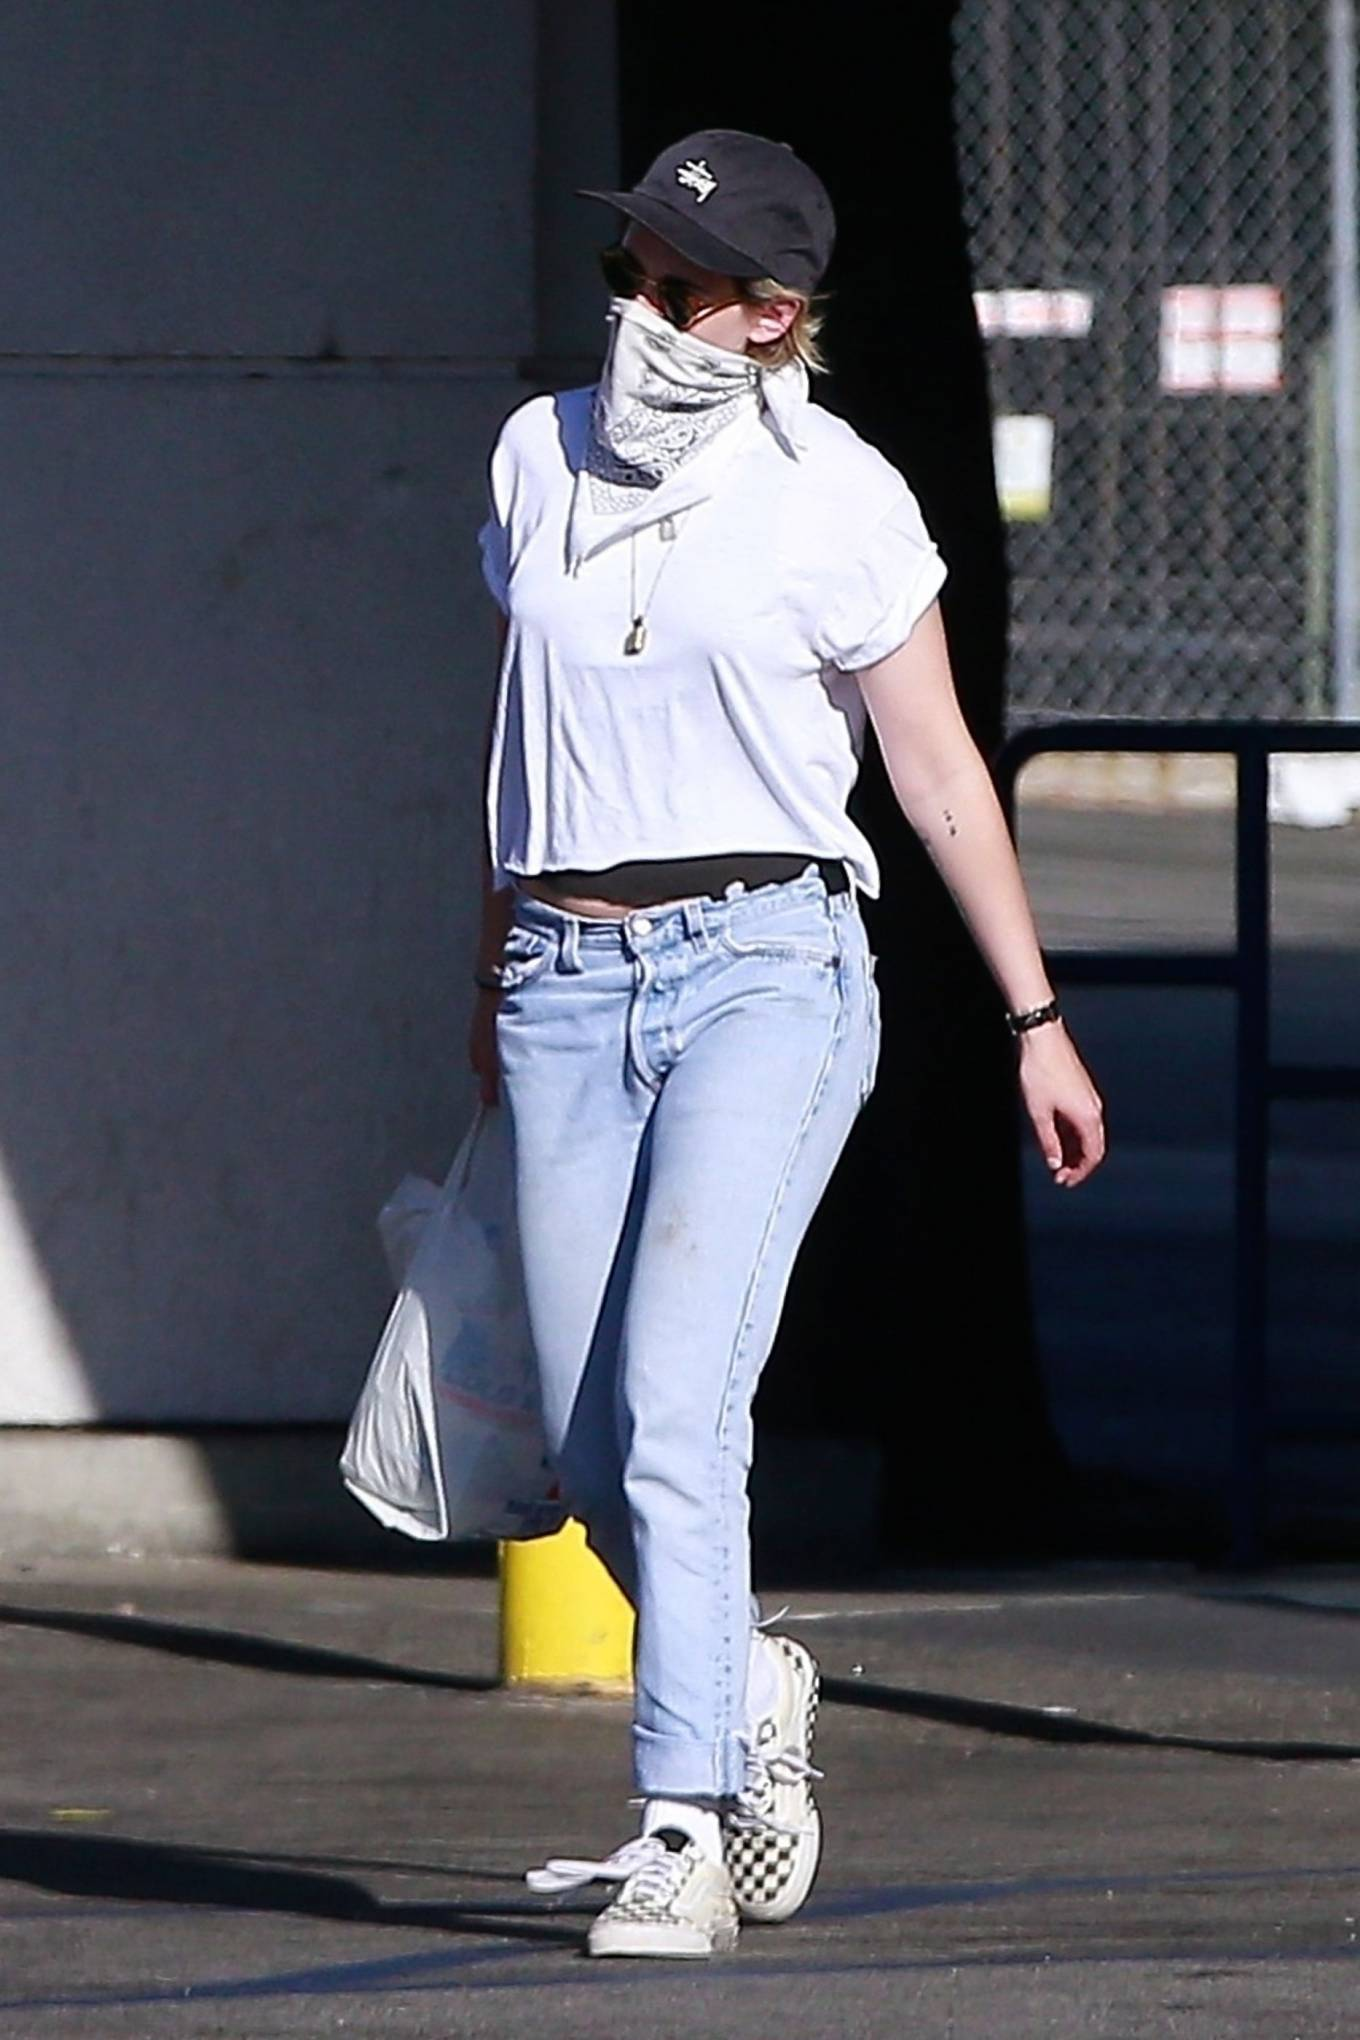 Kristen Stewart rocking a white basic tee with short sleeves and a crew neck